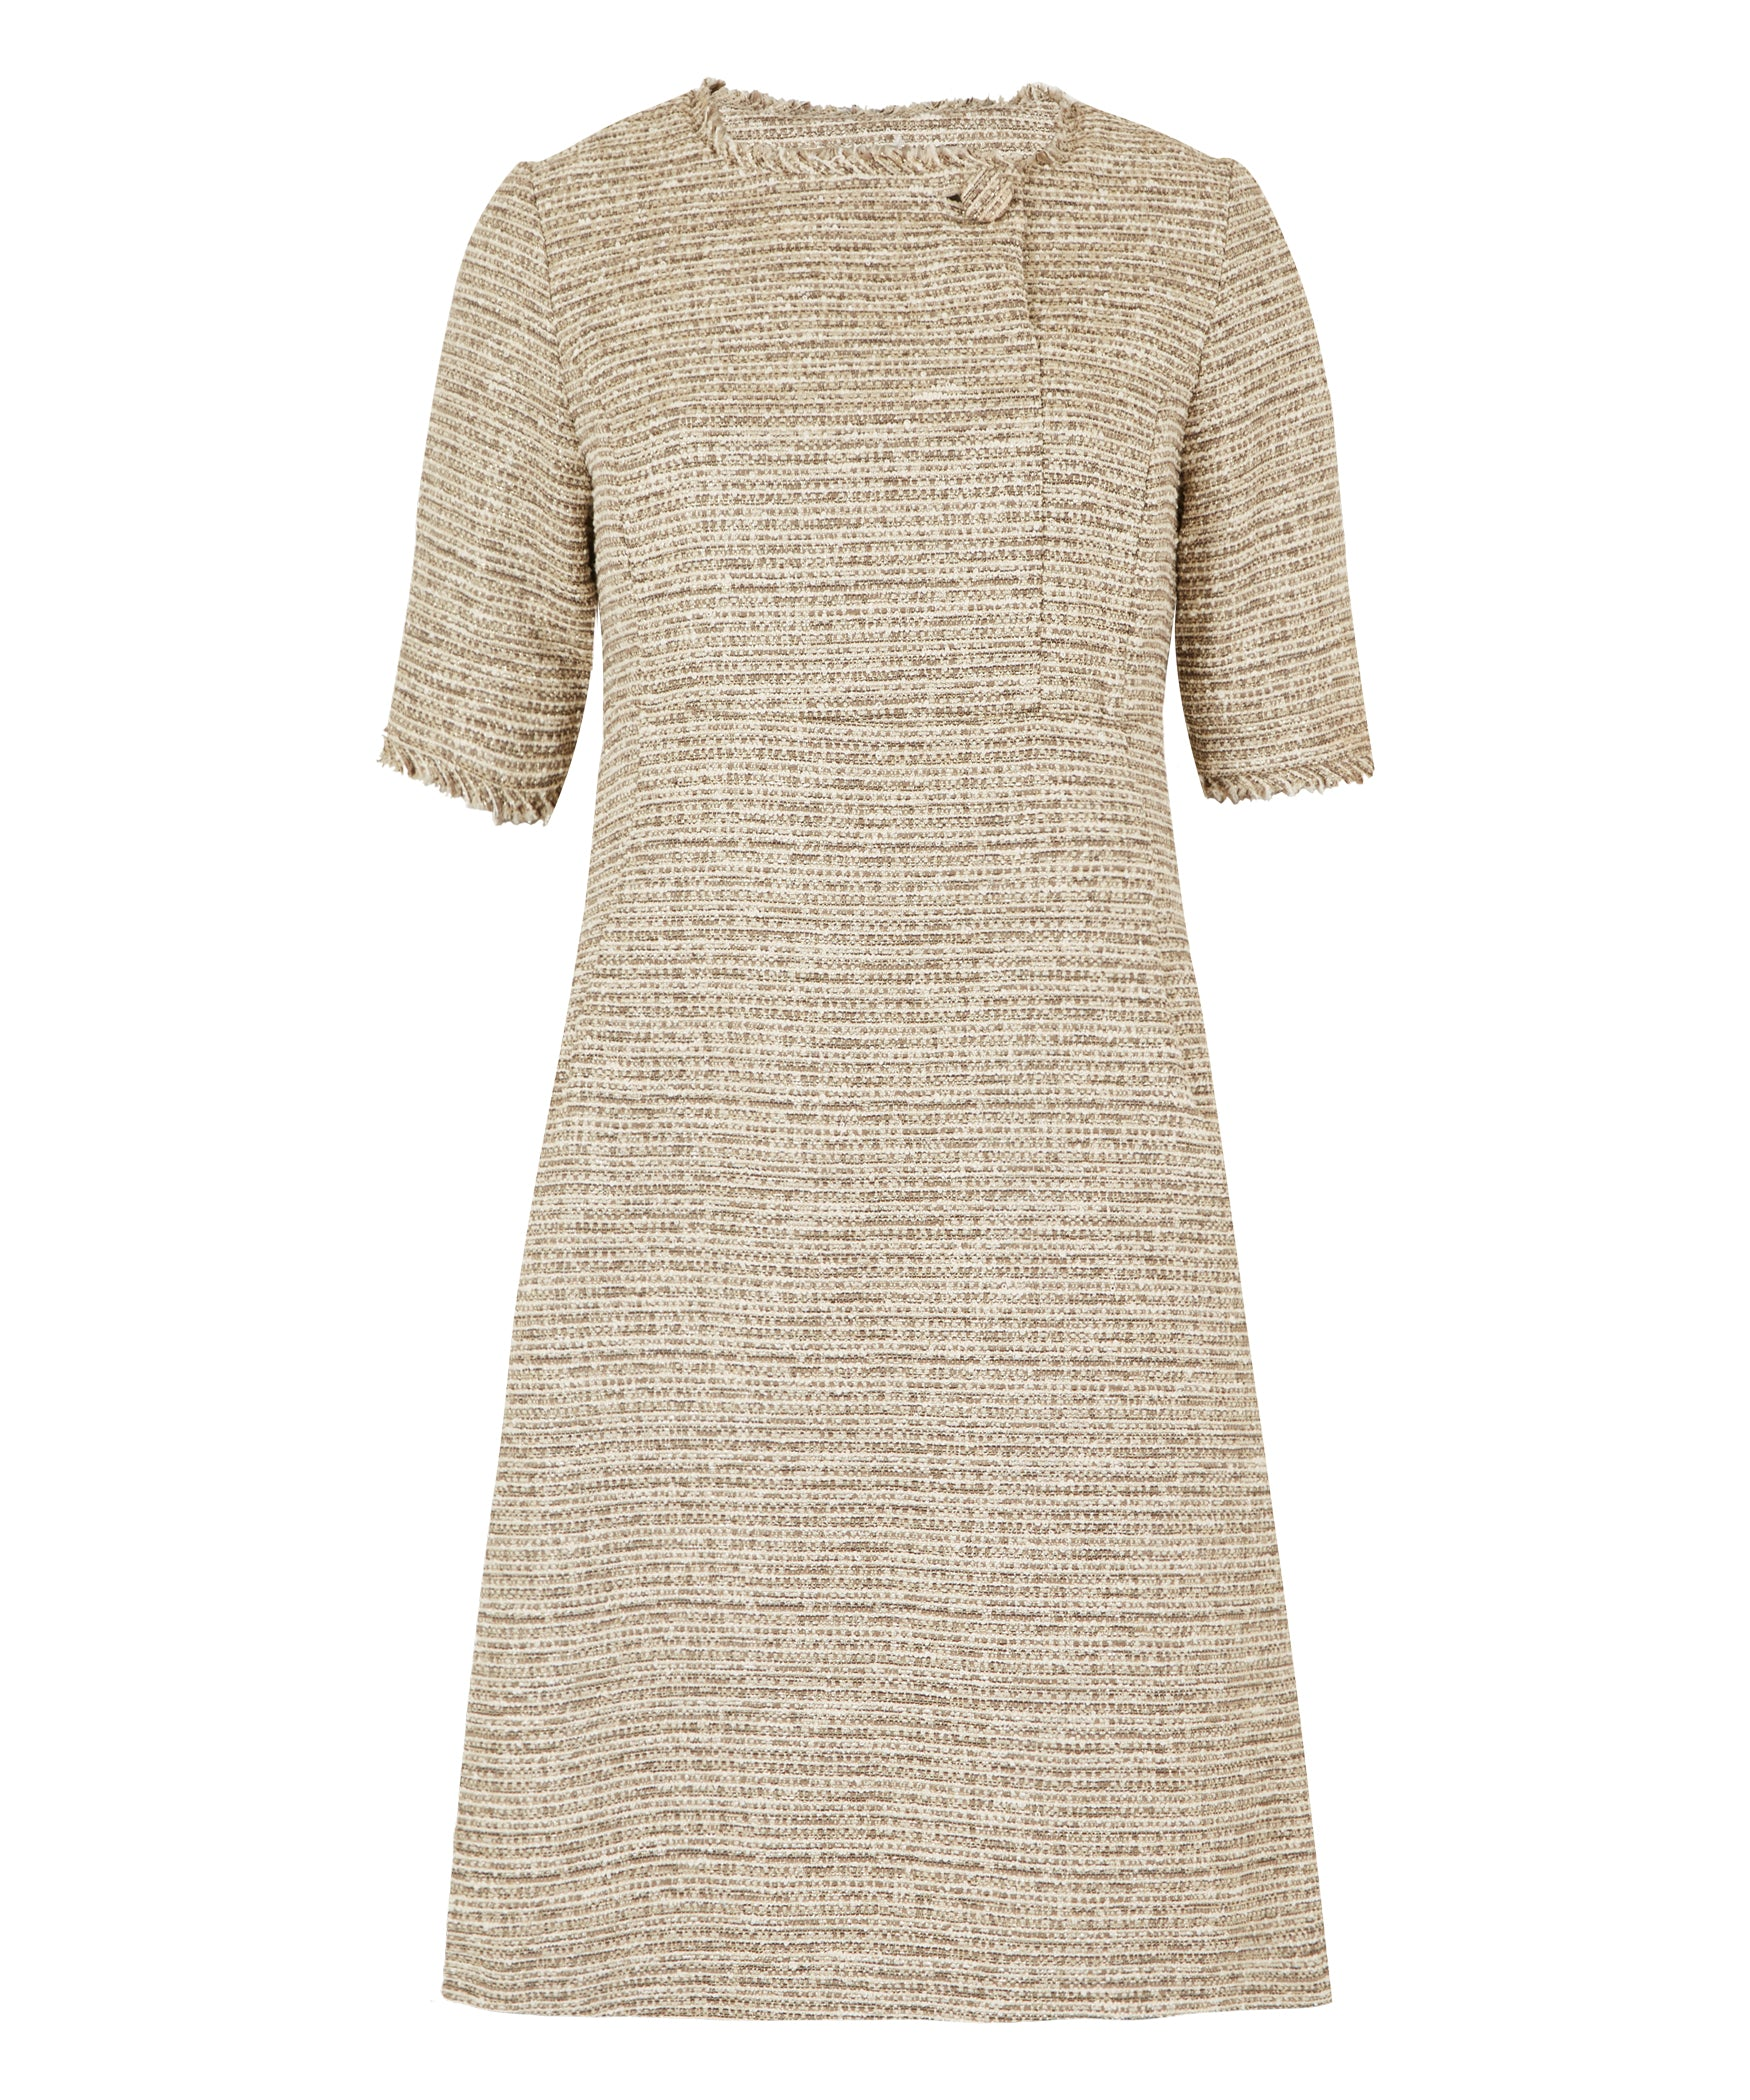 Petite Taupe Cream Button Front Dress (Petite Sizes) Made In The UK 7416062426